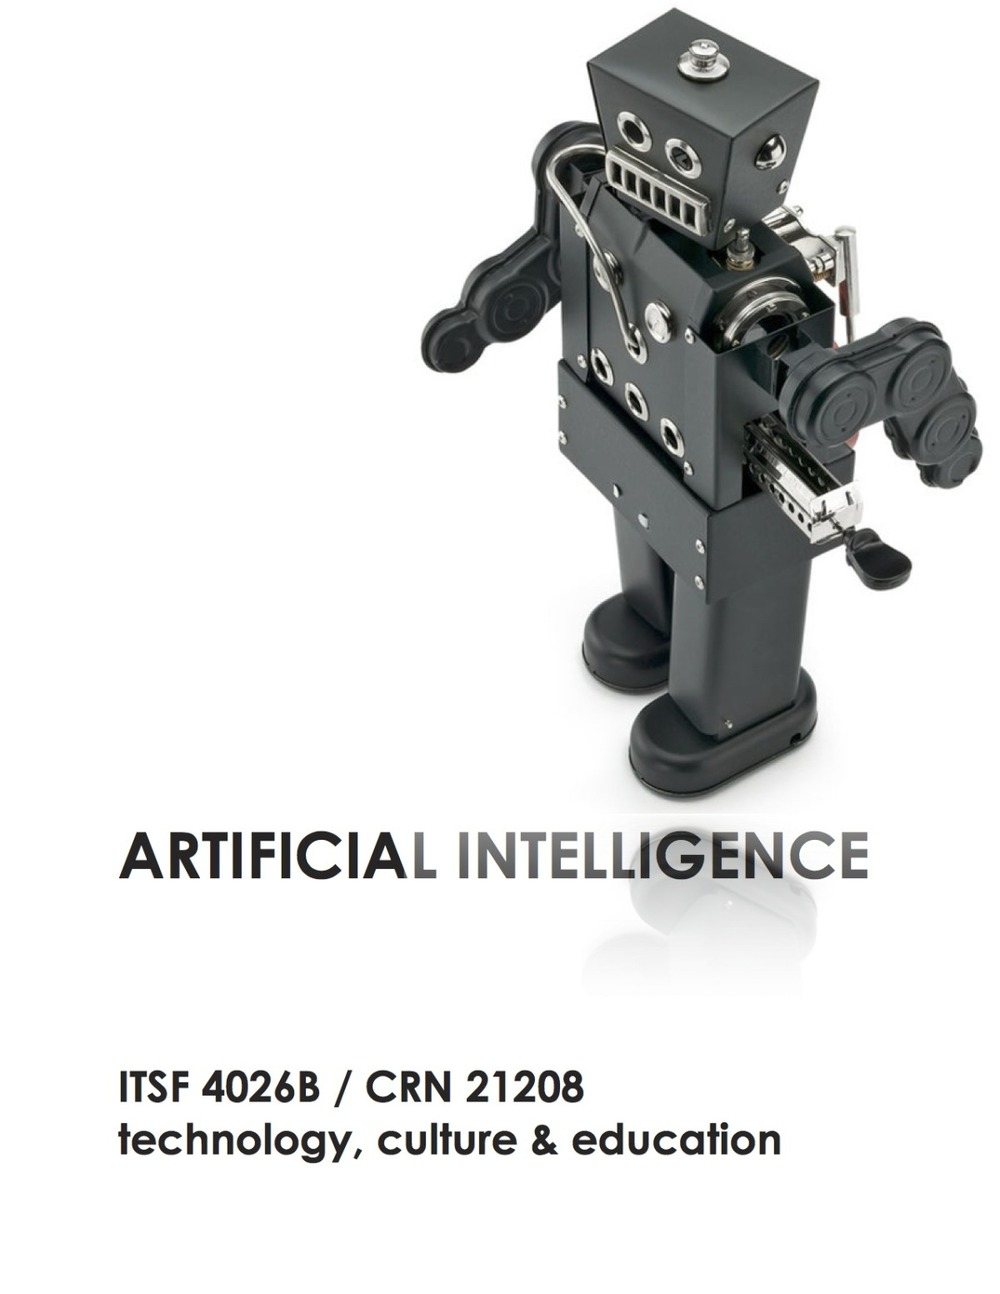 itsf 4026b flyers - artificial intelligence.jpg